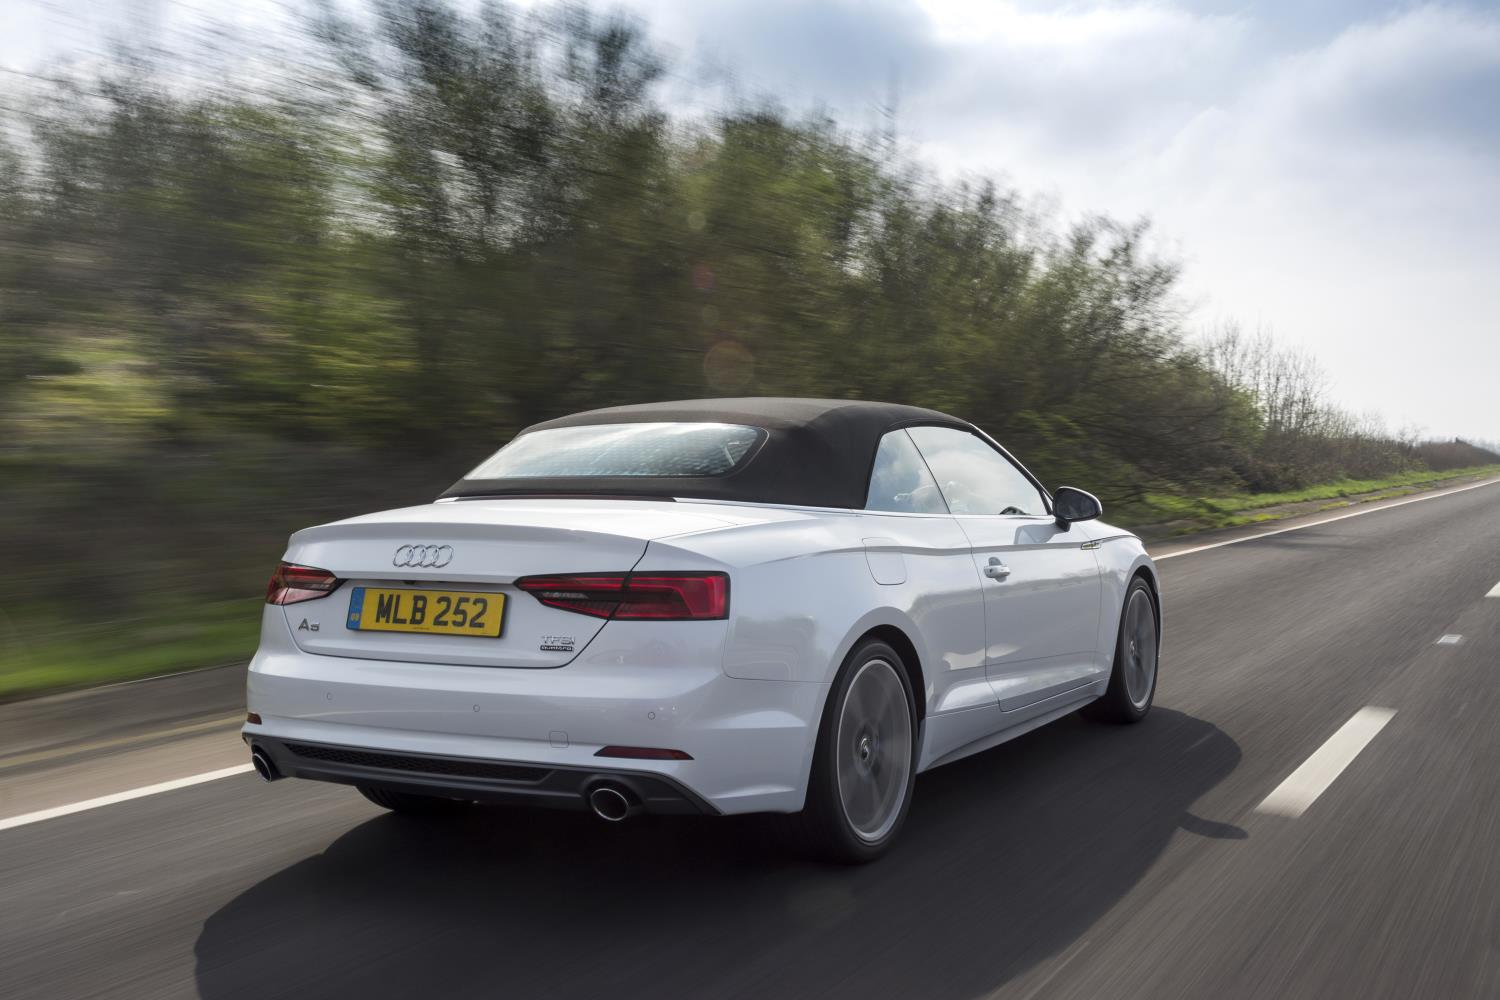 White Audi A5 Cabriolet driving away from you on an open road